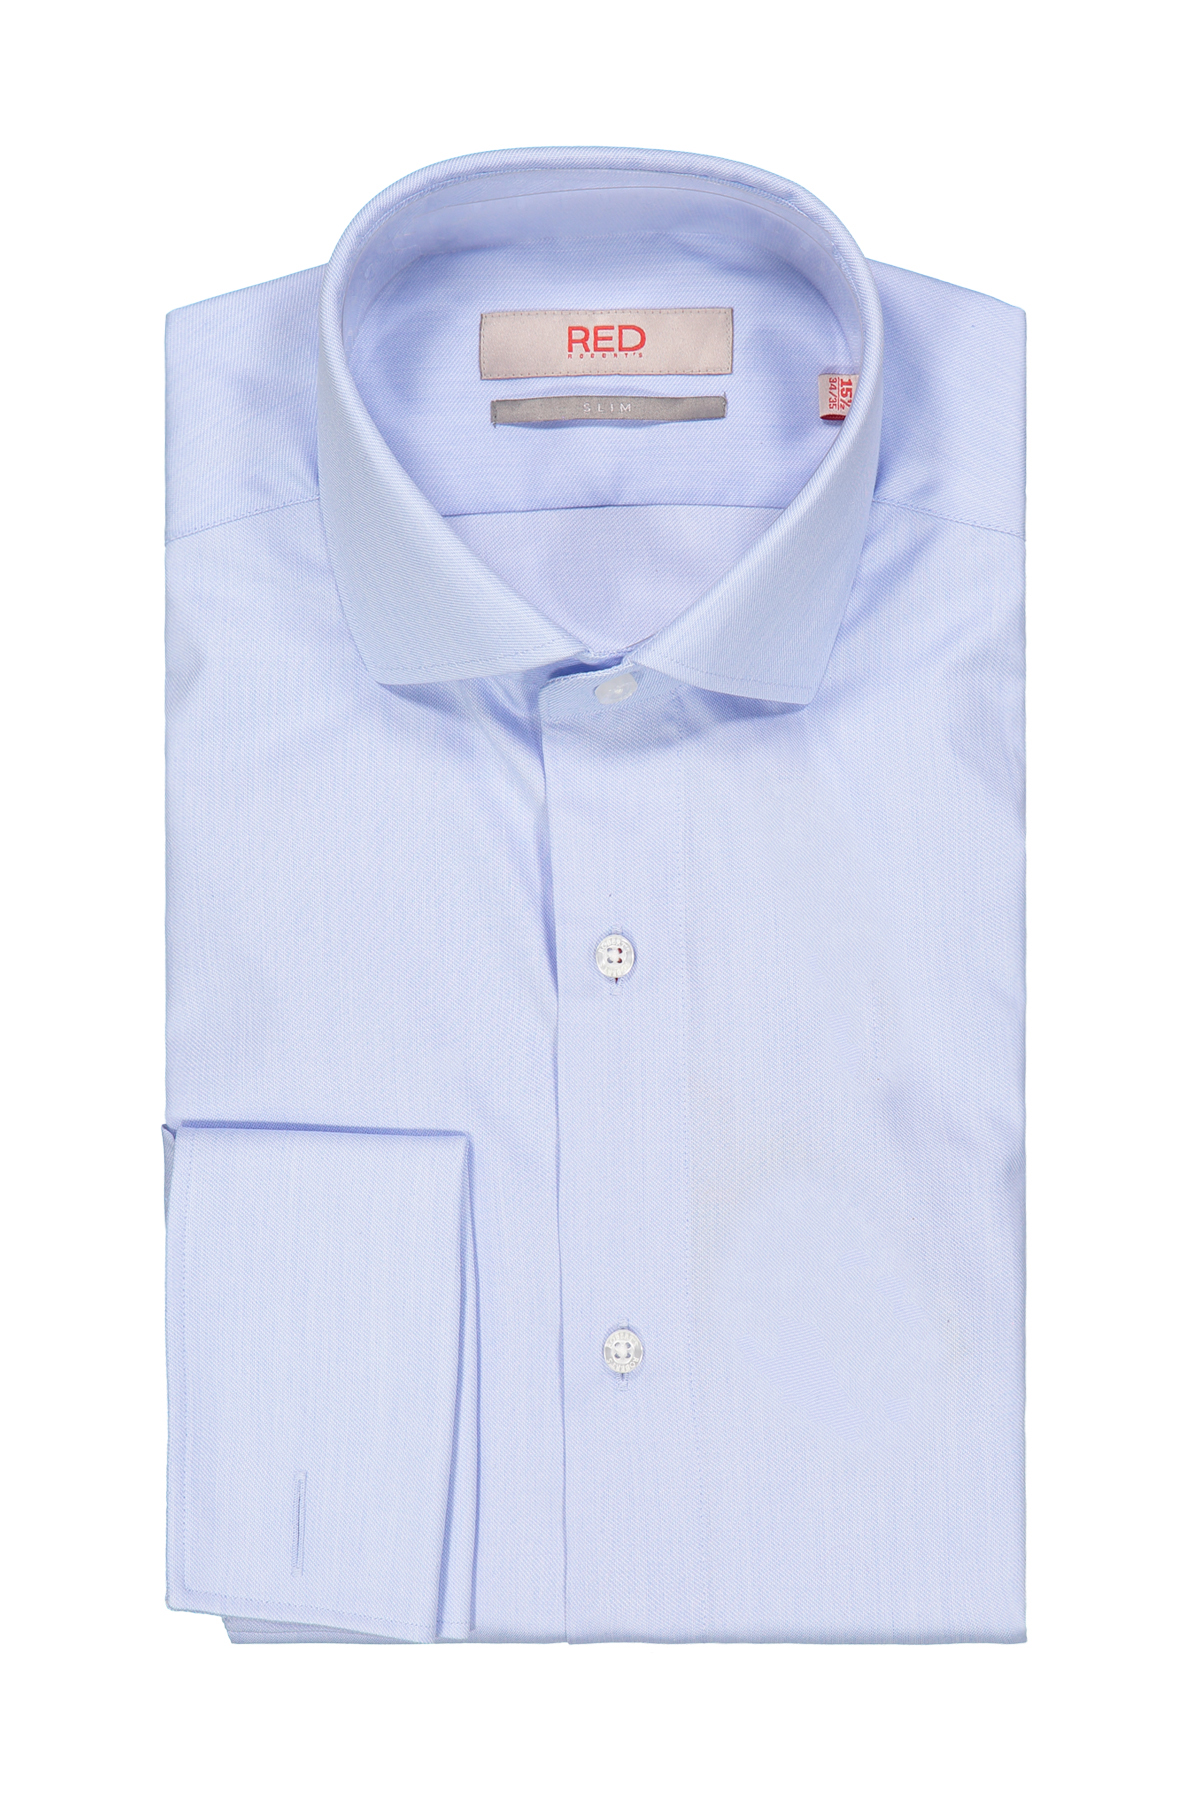 Camisa Robert´s Red, 100% algodón, slim fit, color celeste.